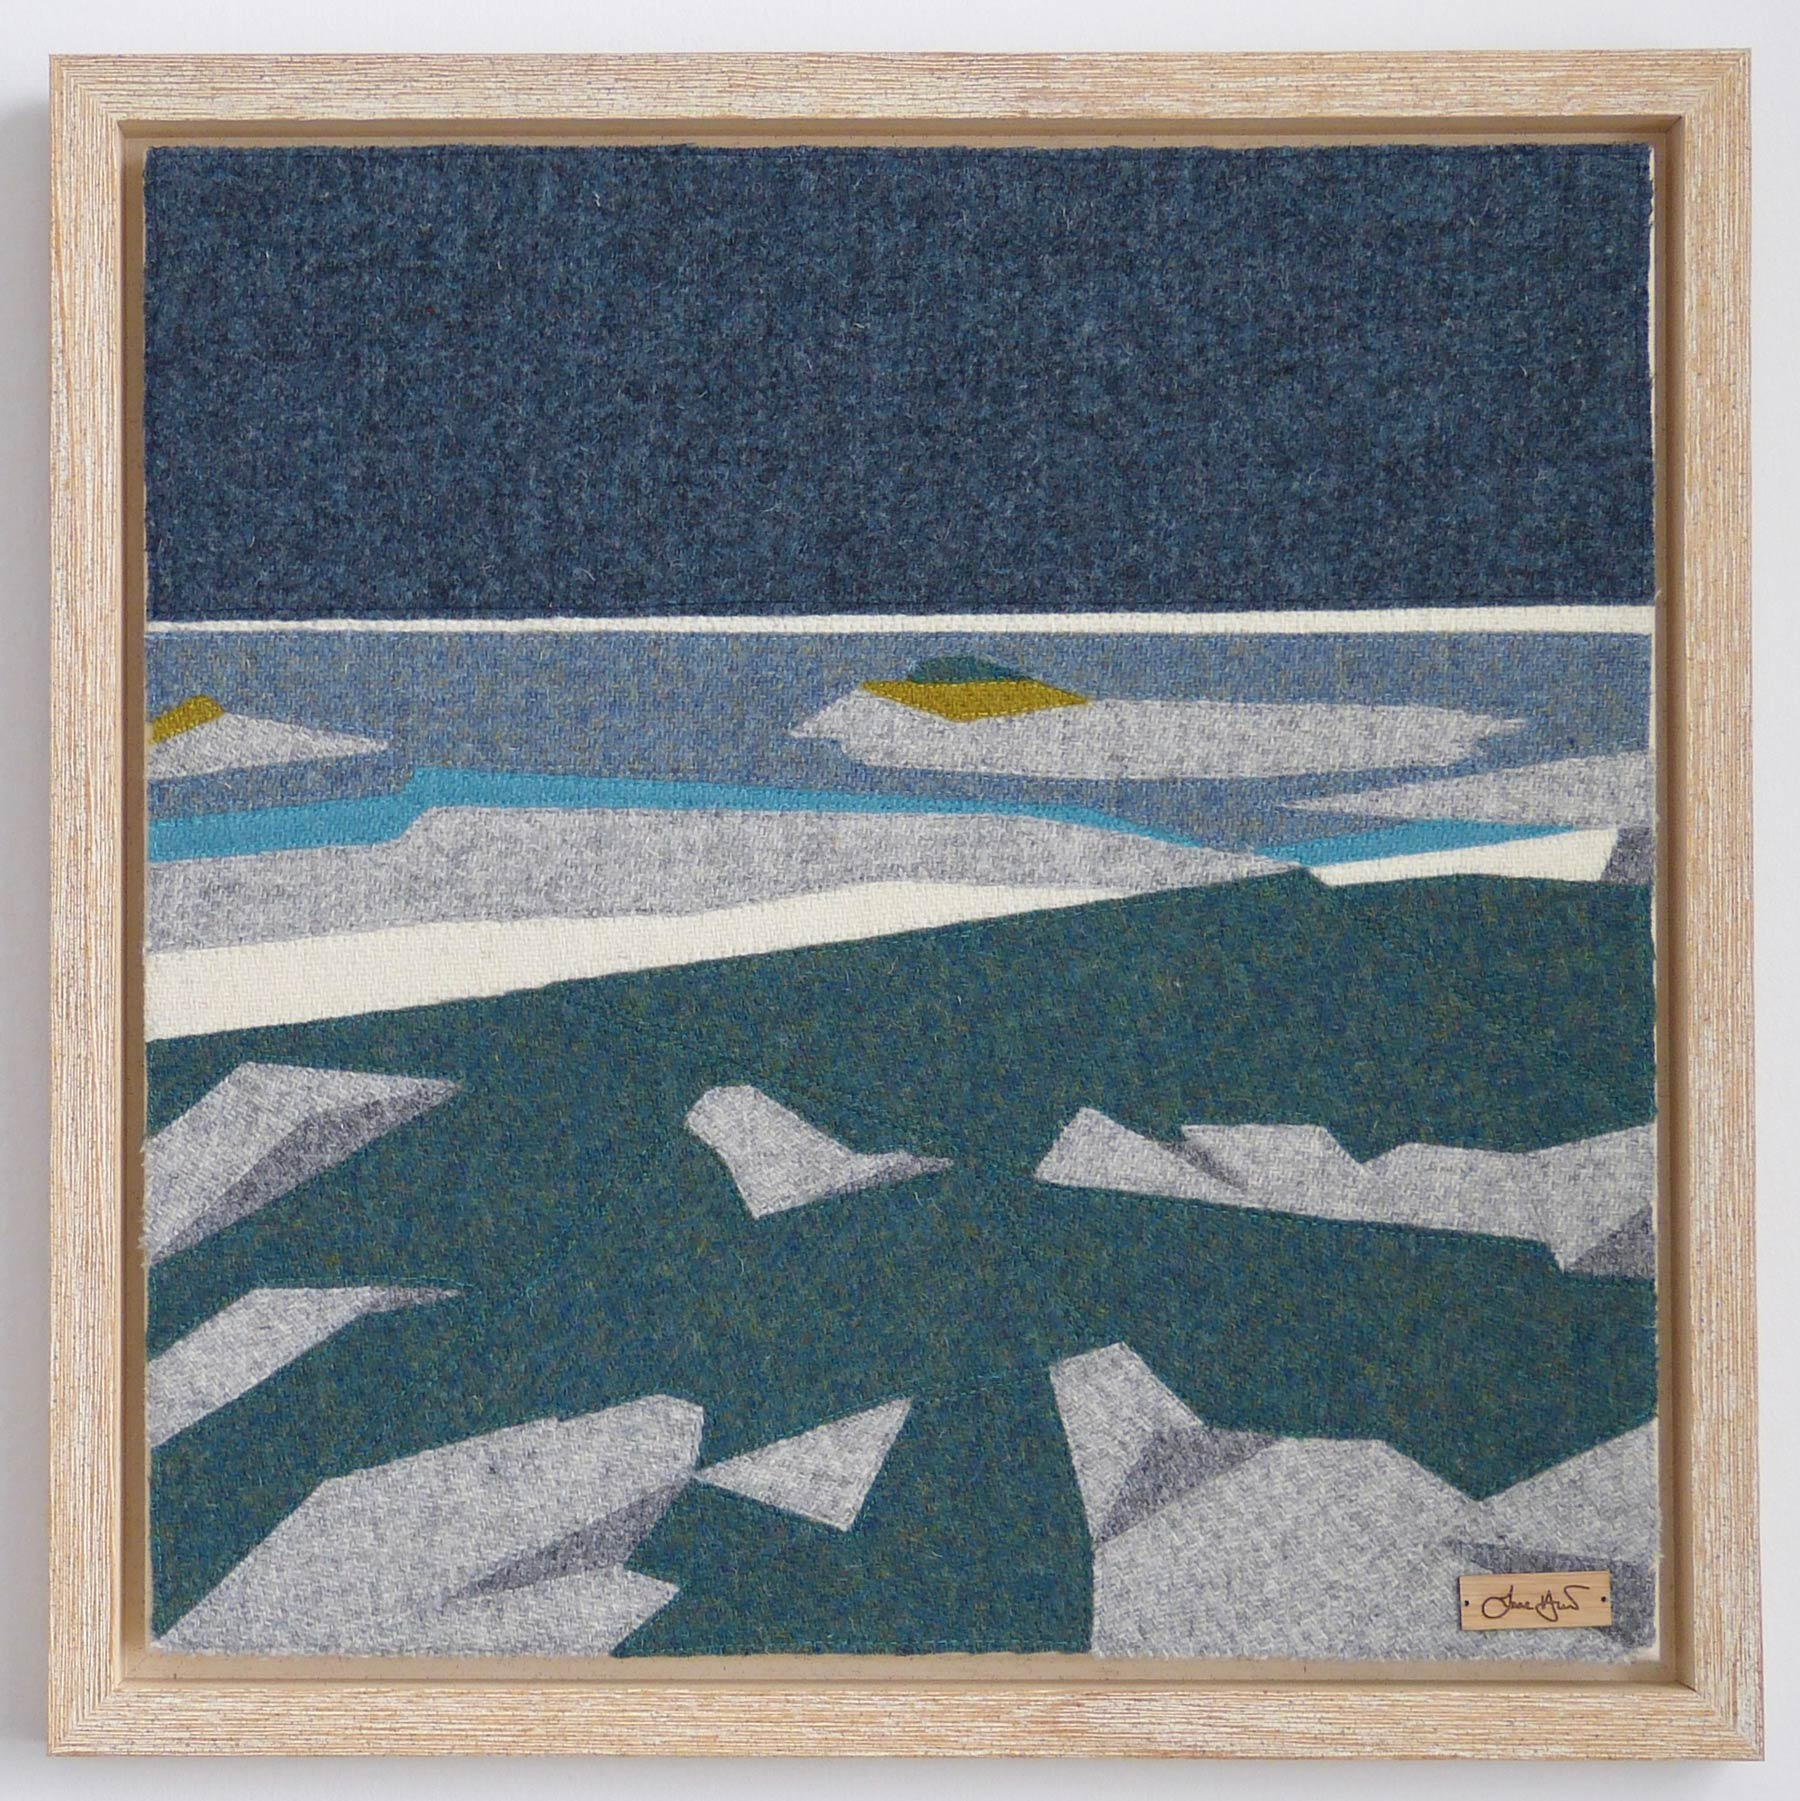 Arisaig Landscape Artwork Geology Scottish Artist Jane Hunter